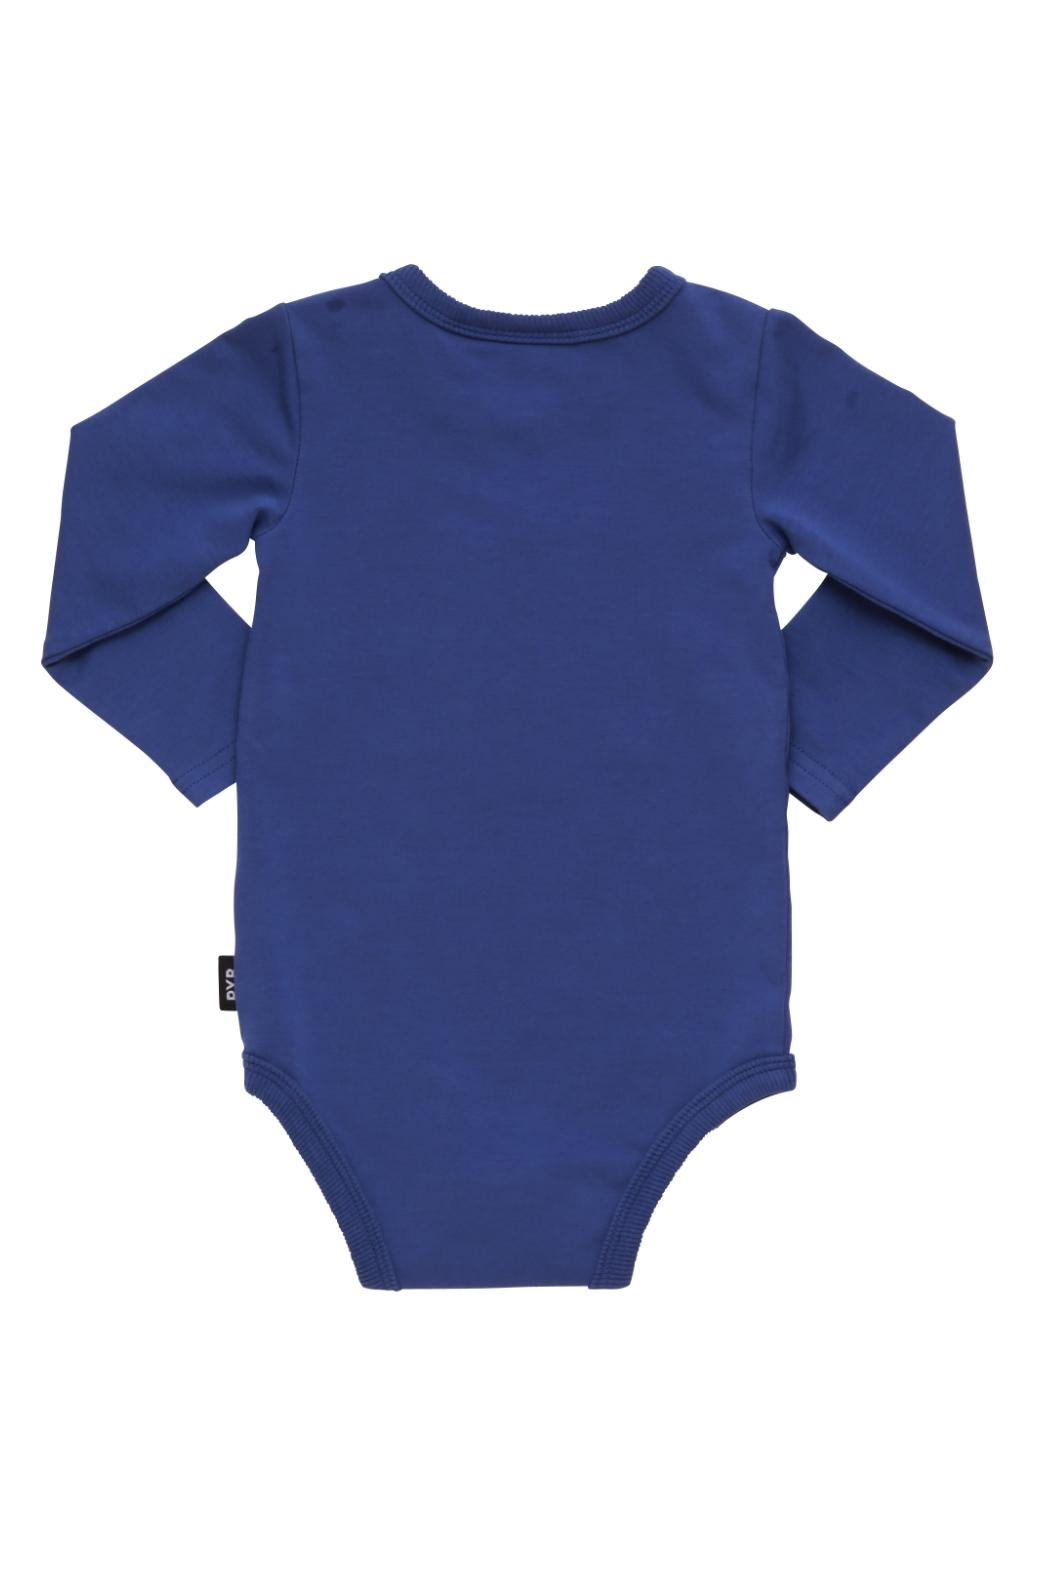 Rock Your Baby More Love Bodysuit - Front Full Image